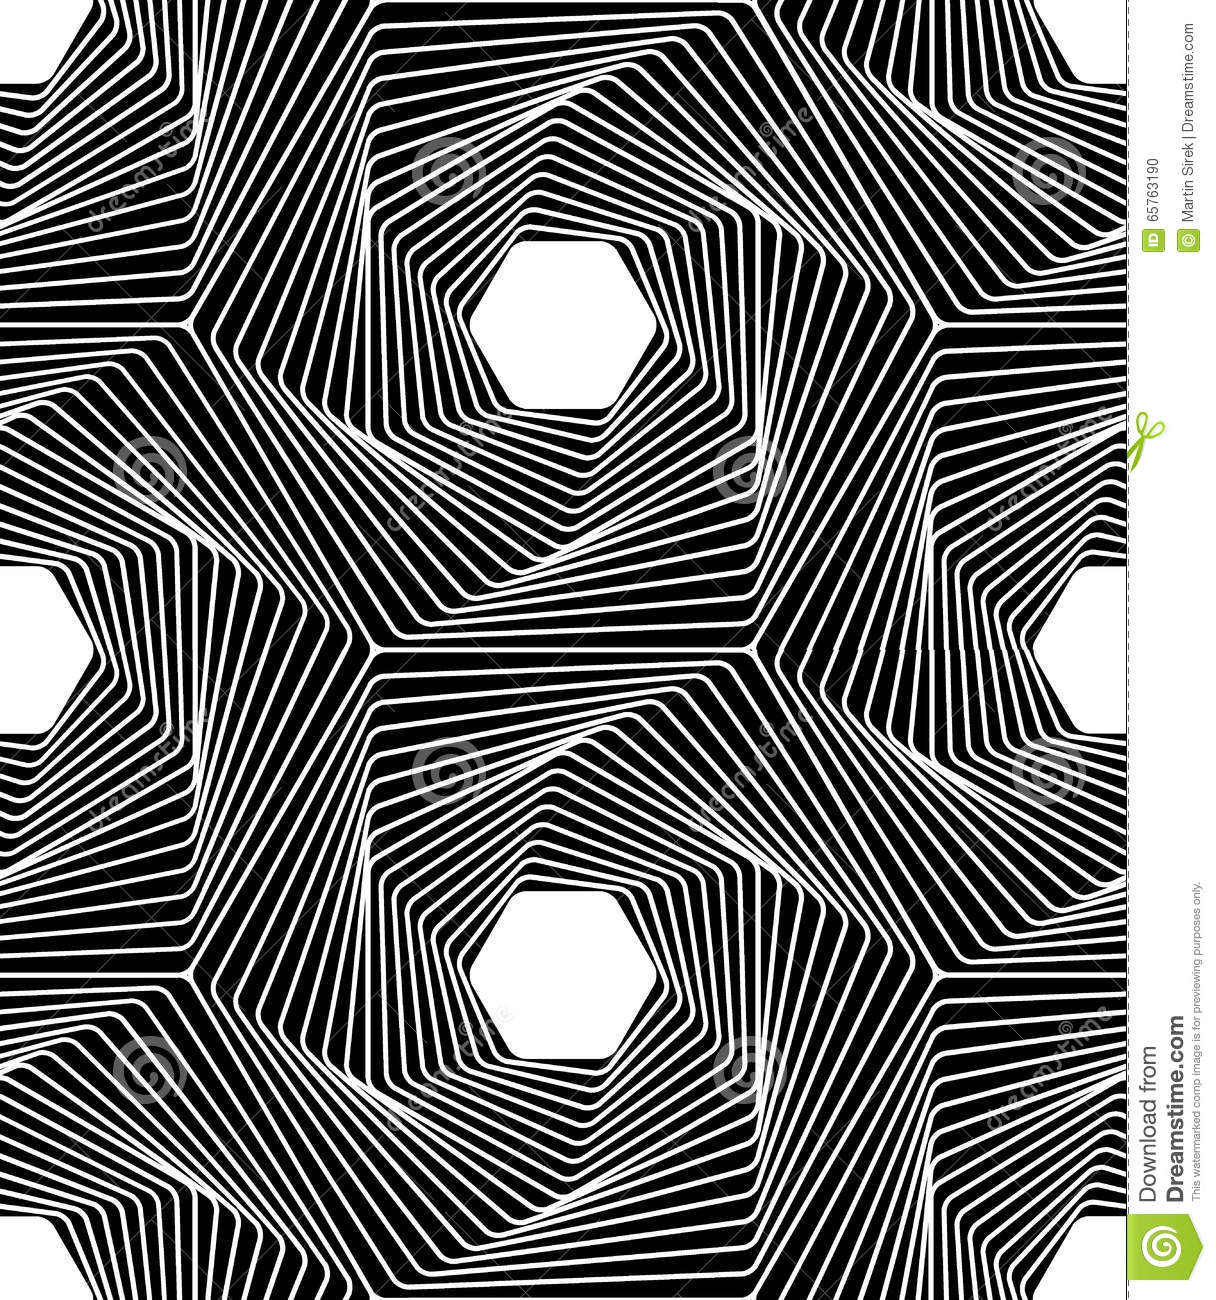 Line White Seamless Black And White Abstract Modern Line Pattern